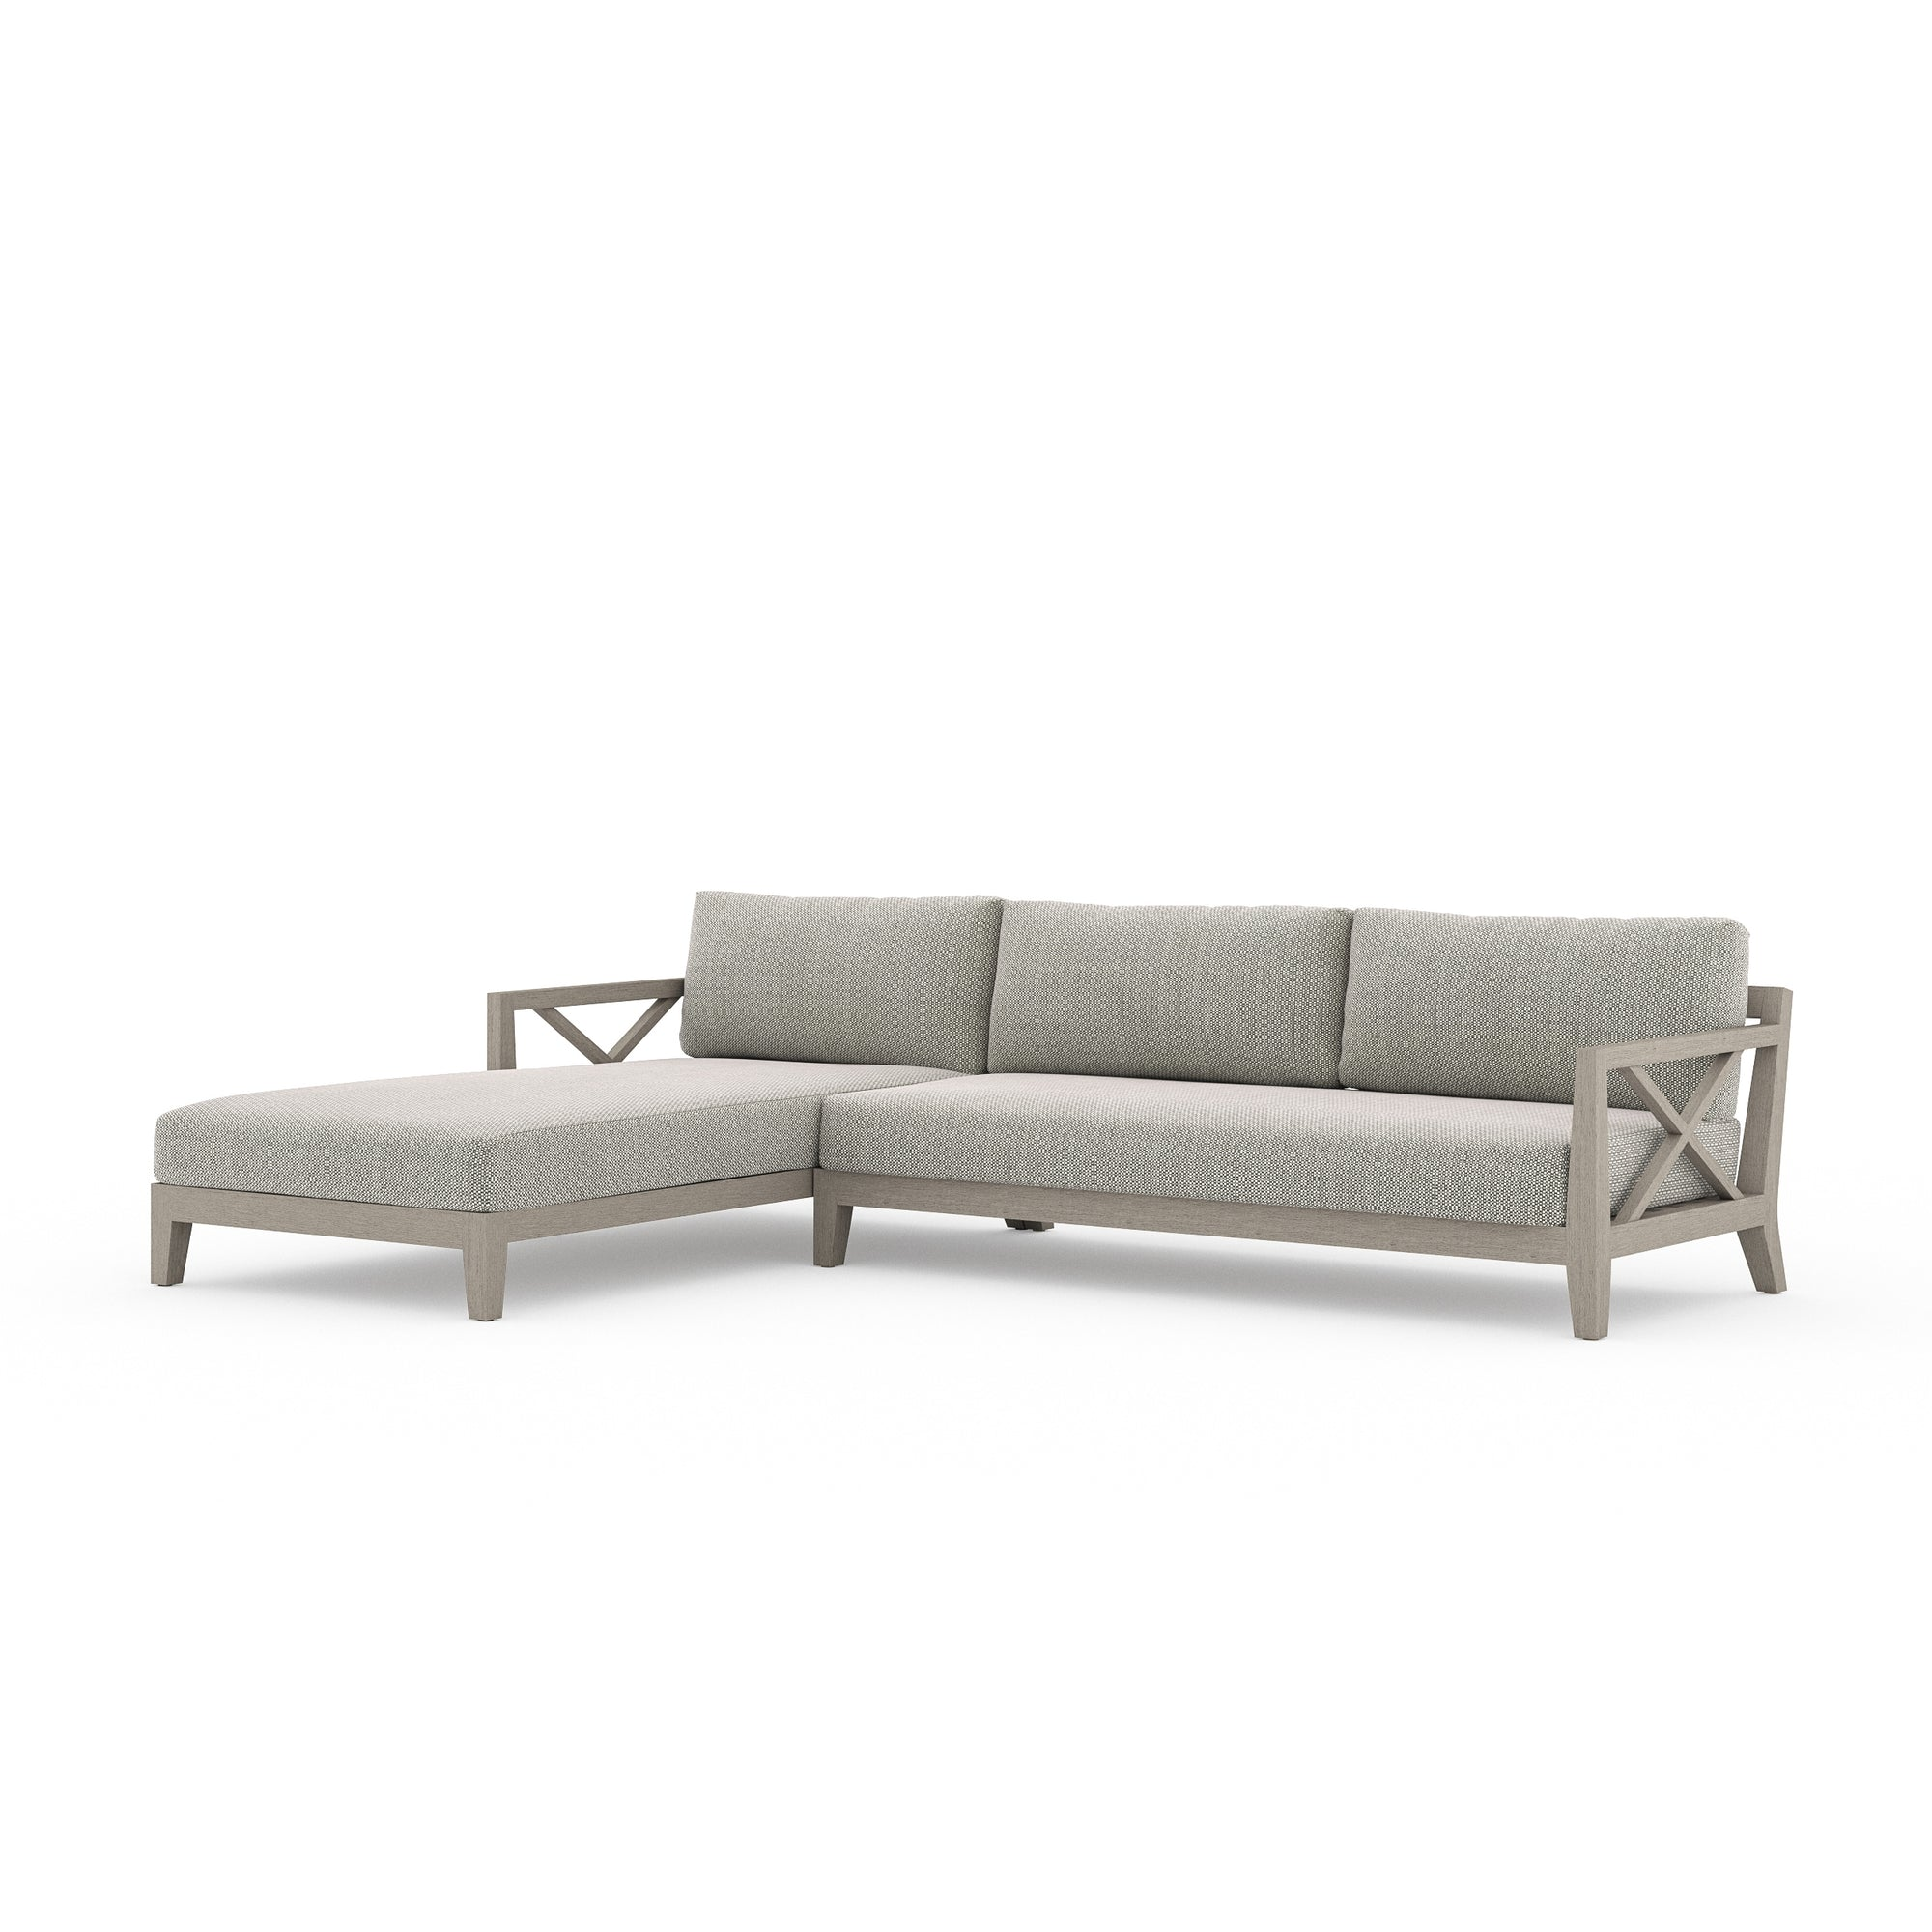 Huntington 2 Pc Laf Sectional - Grey/Navy